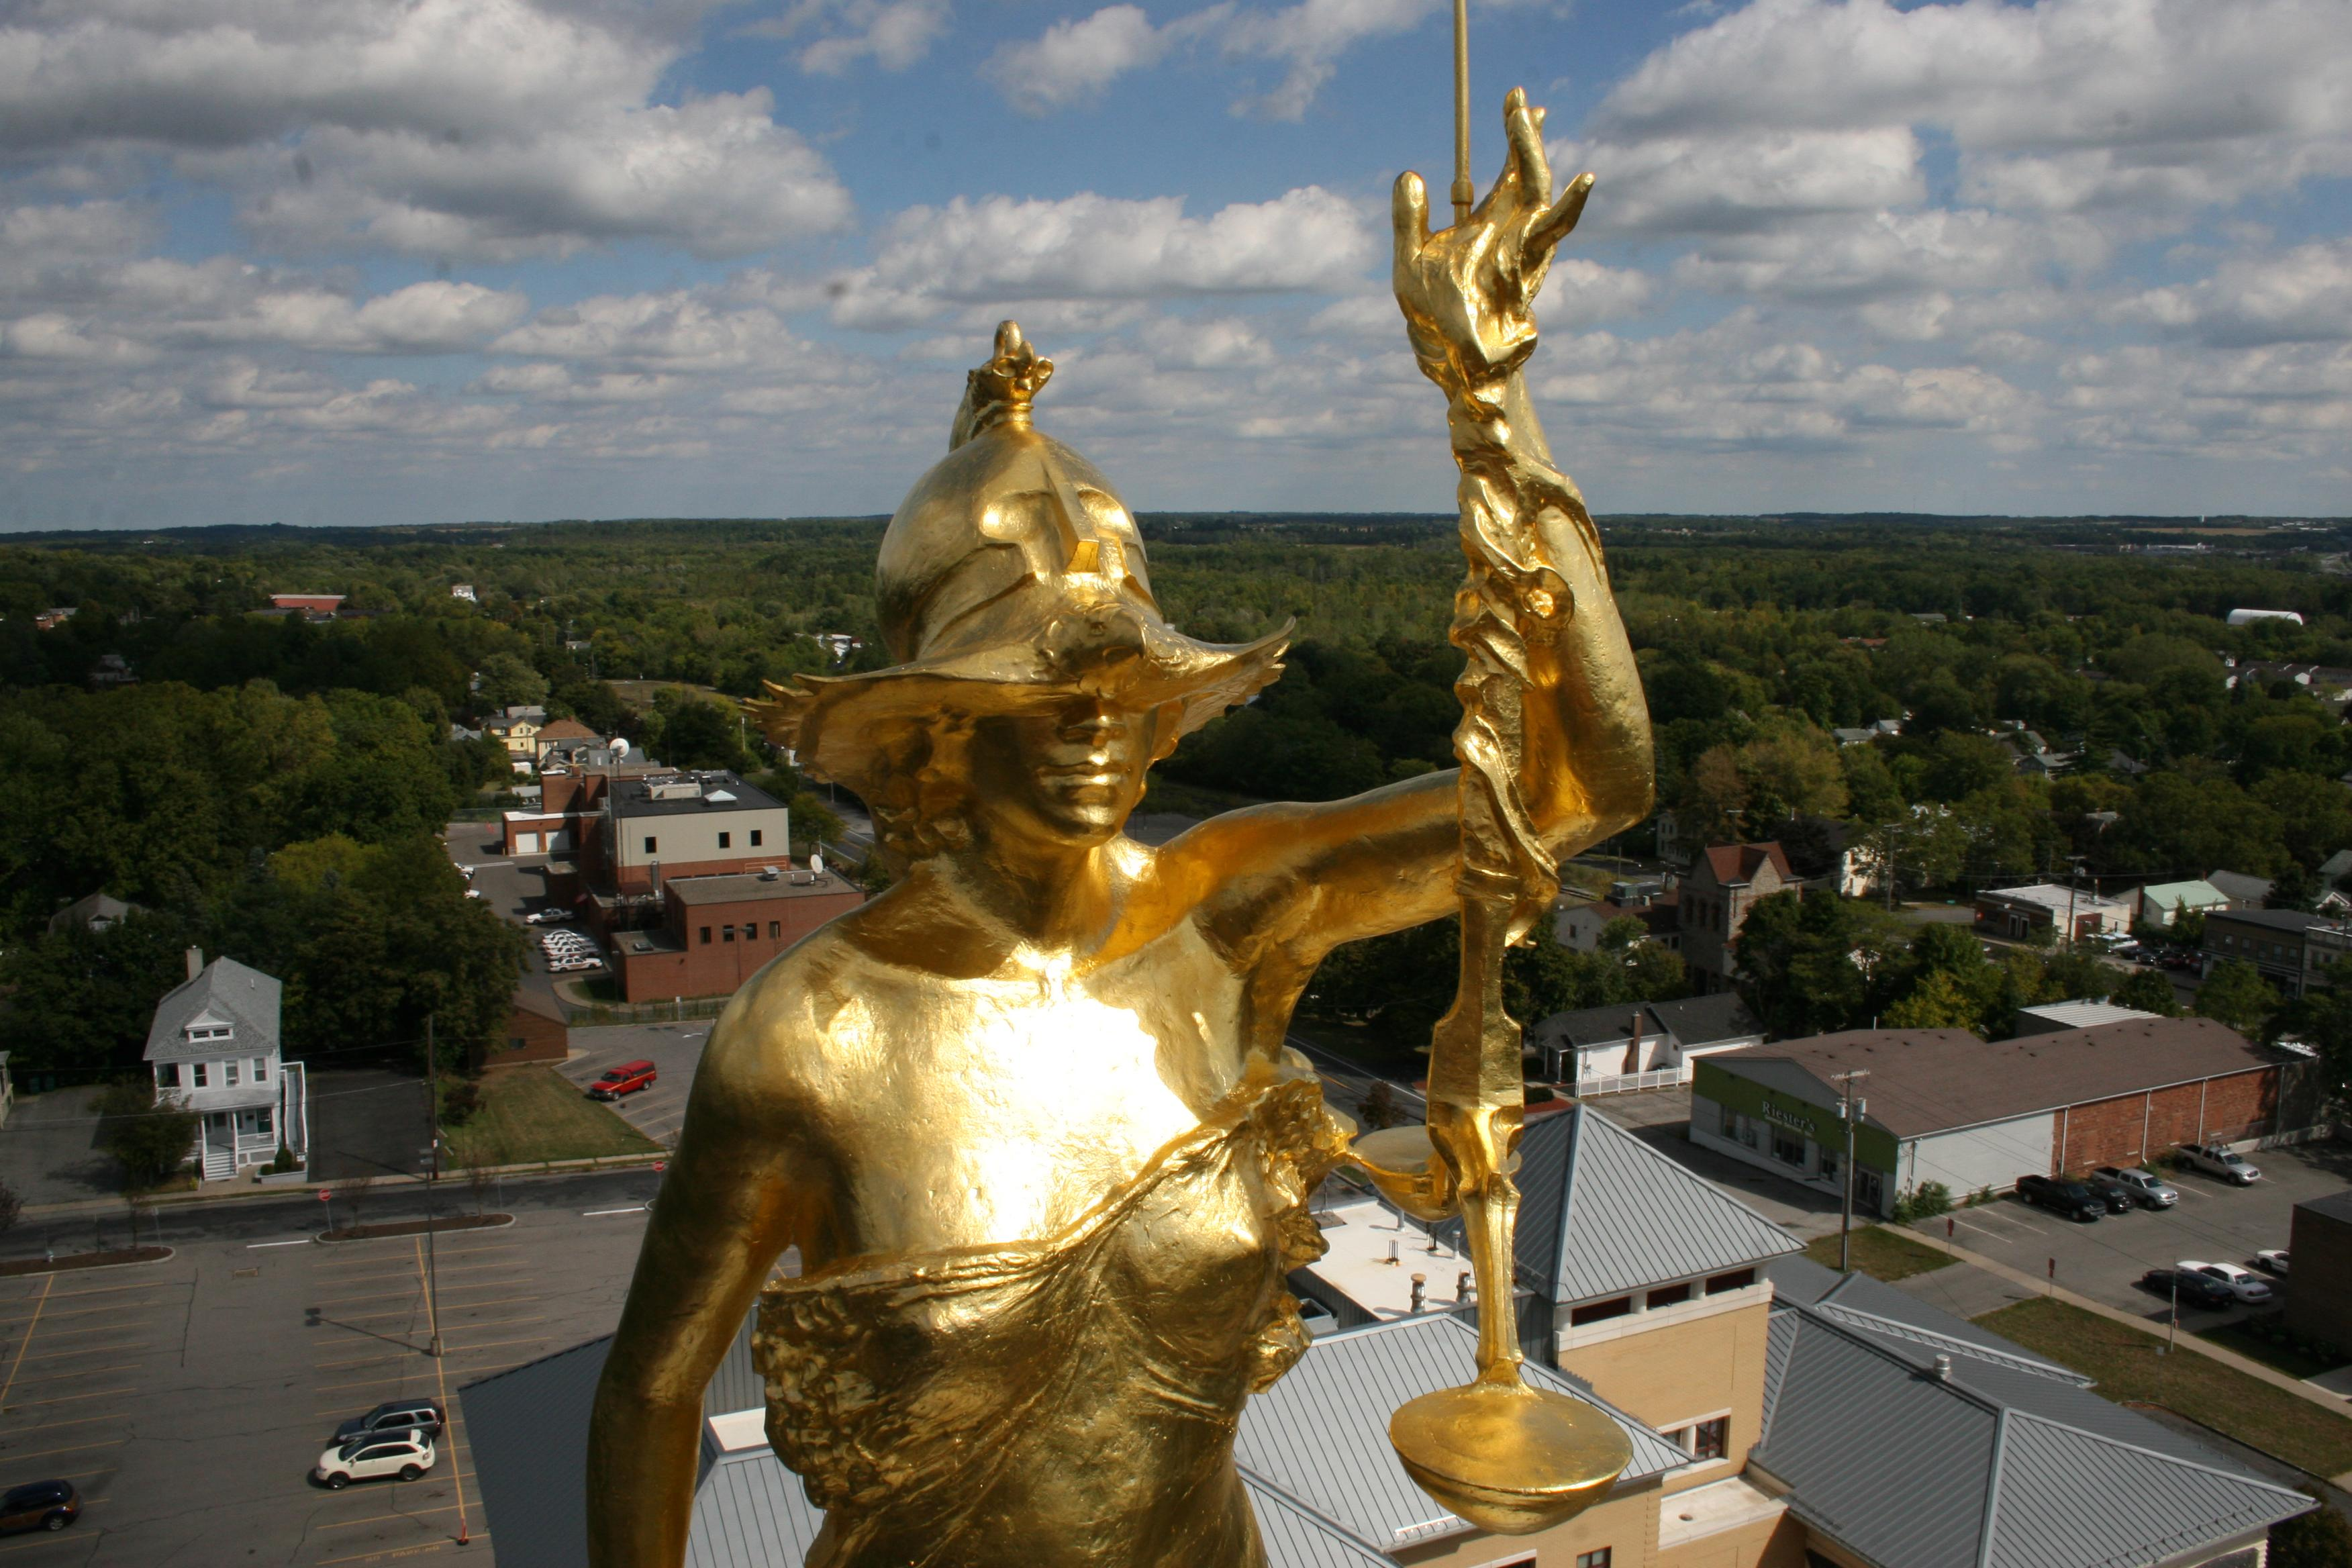 ontario-county-courthouse-lady-justice.jpg